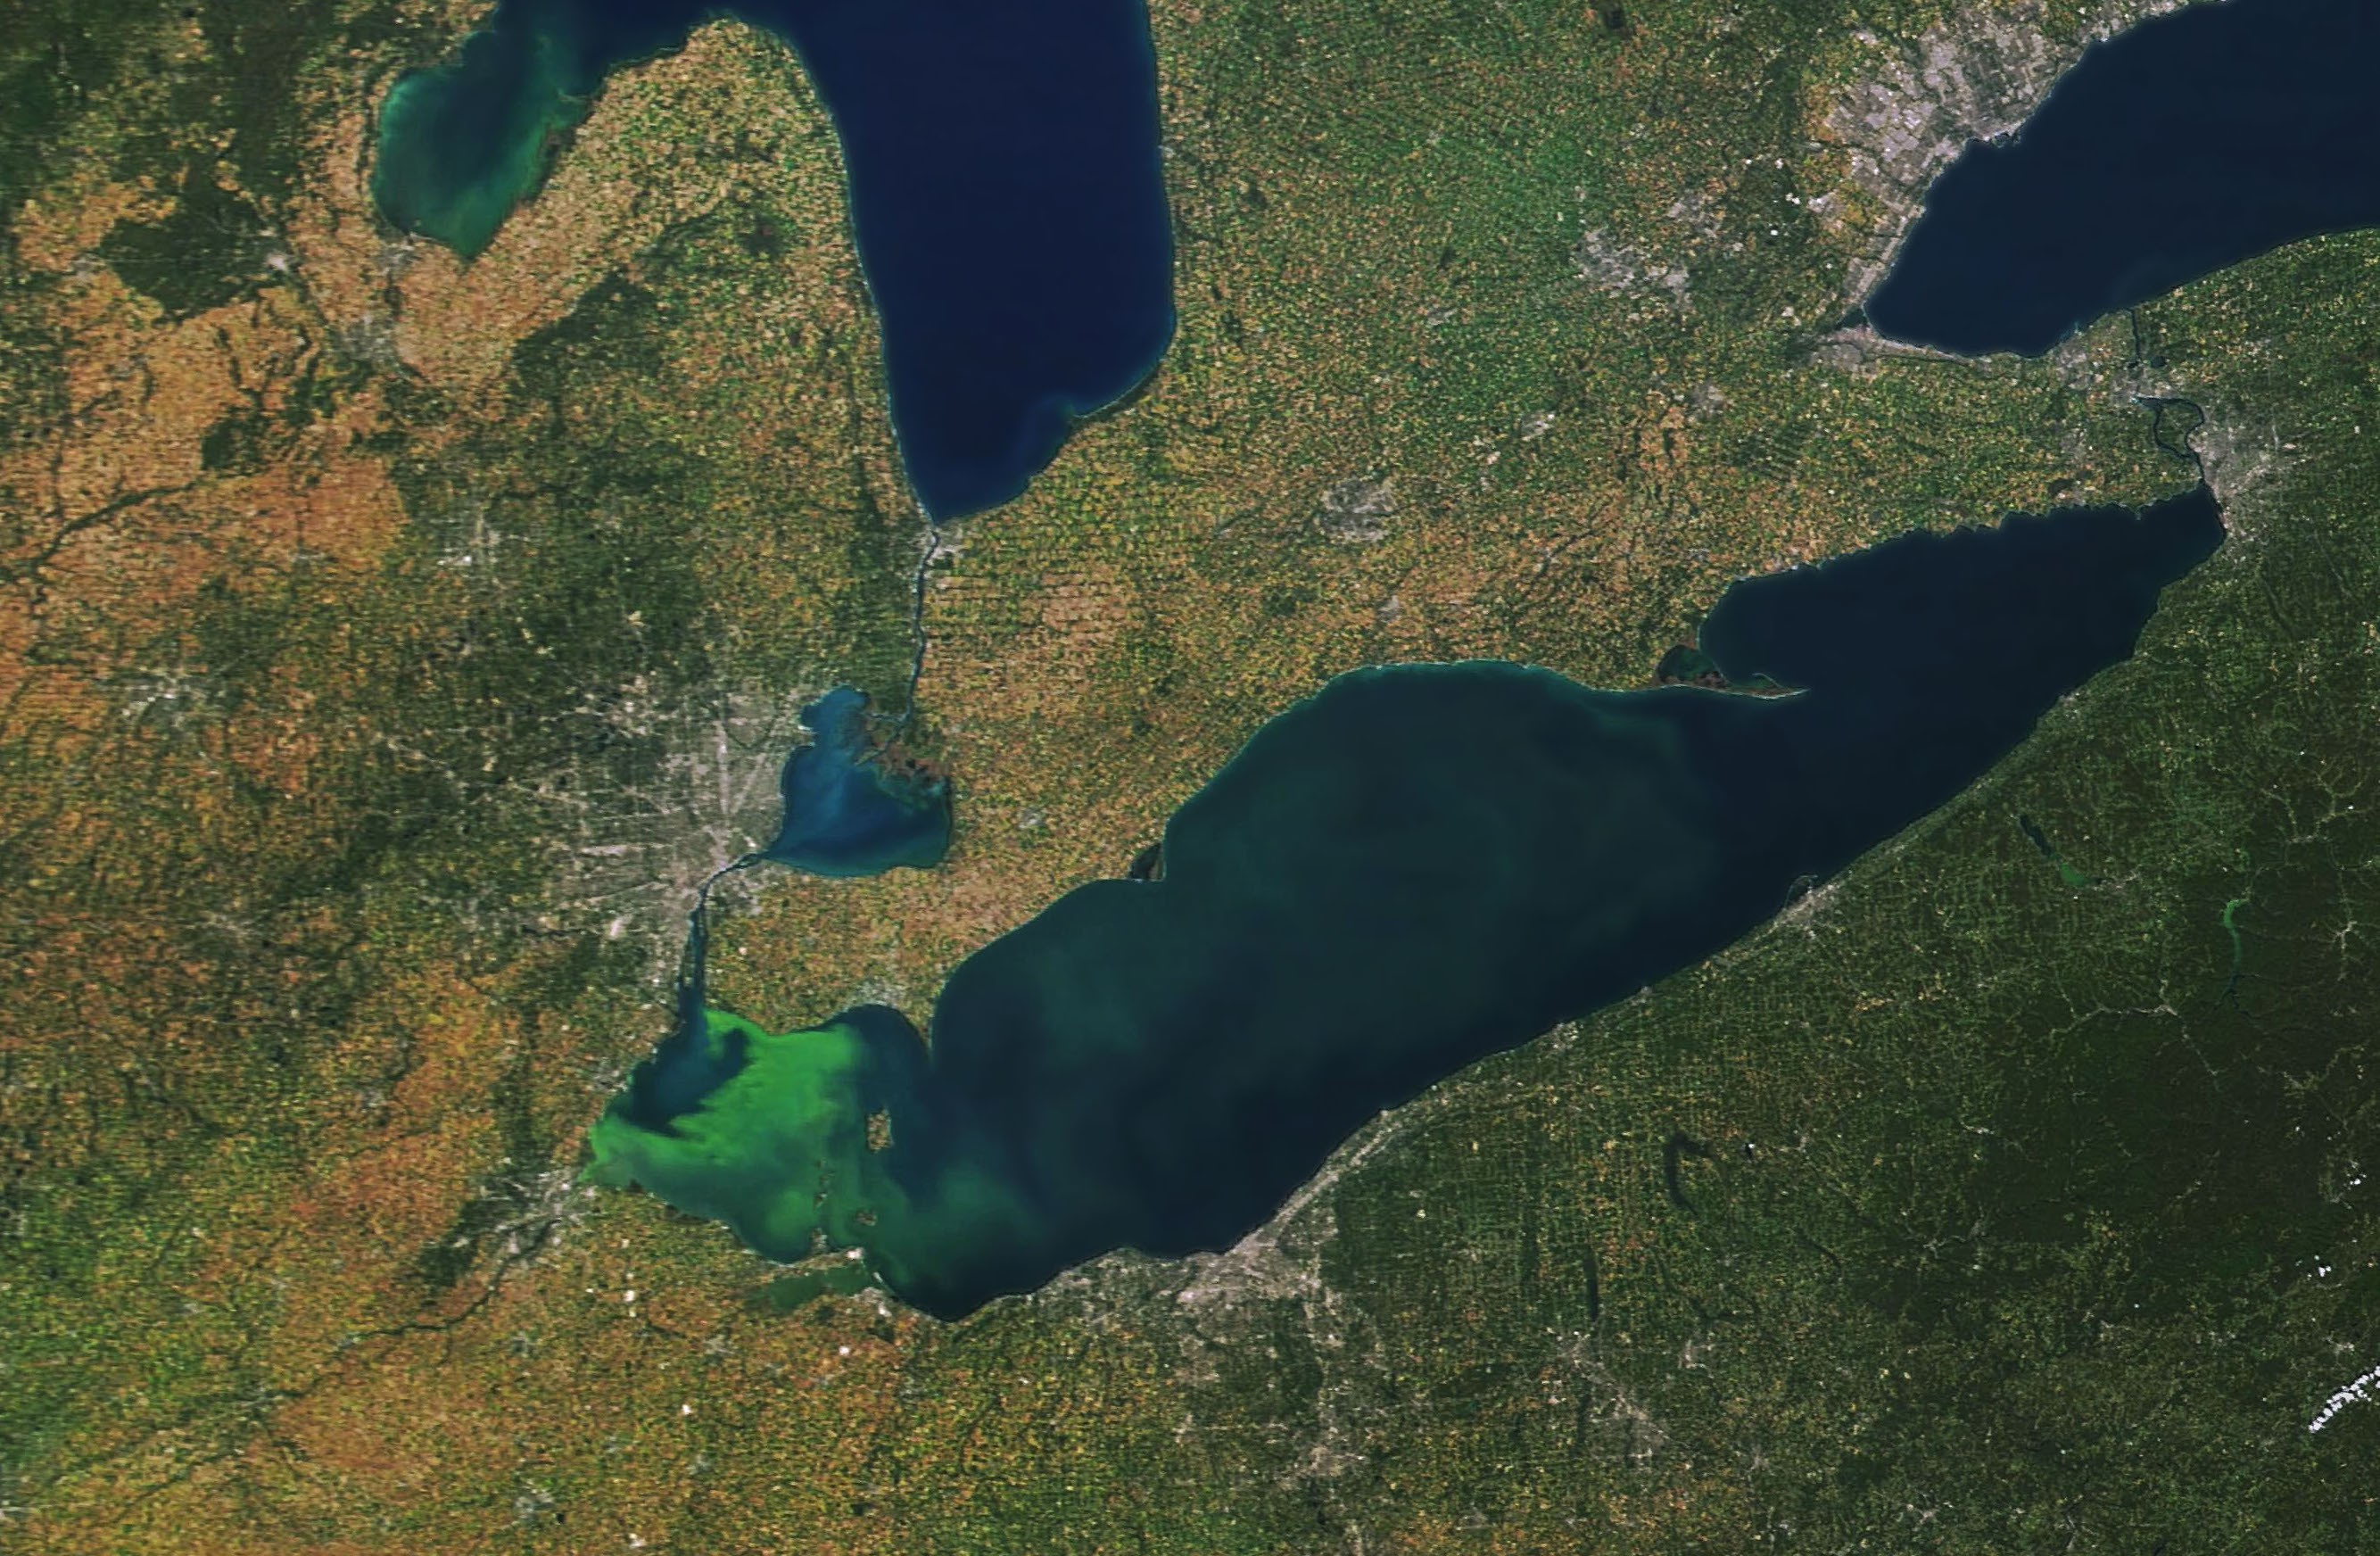 Today's Image of the Day comes thanks to the NASA Earth Observatory and features a look at phytoplankton blooms in Lake Erie.